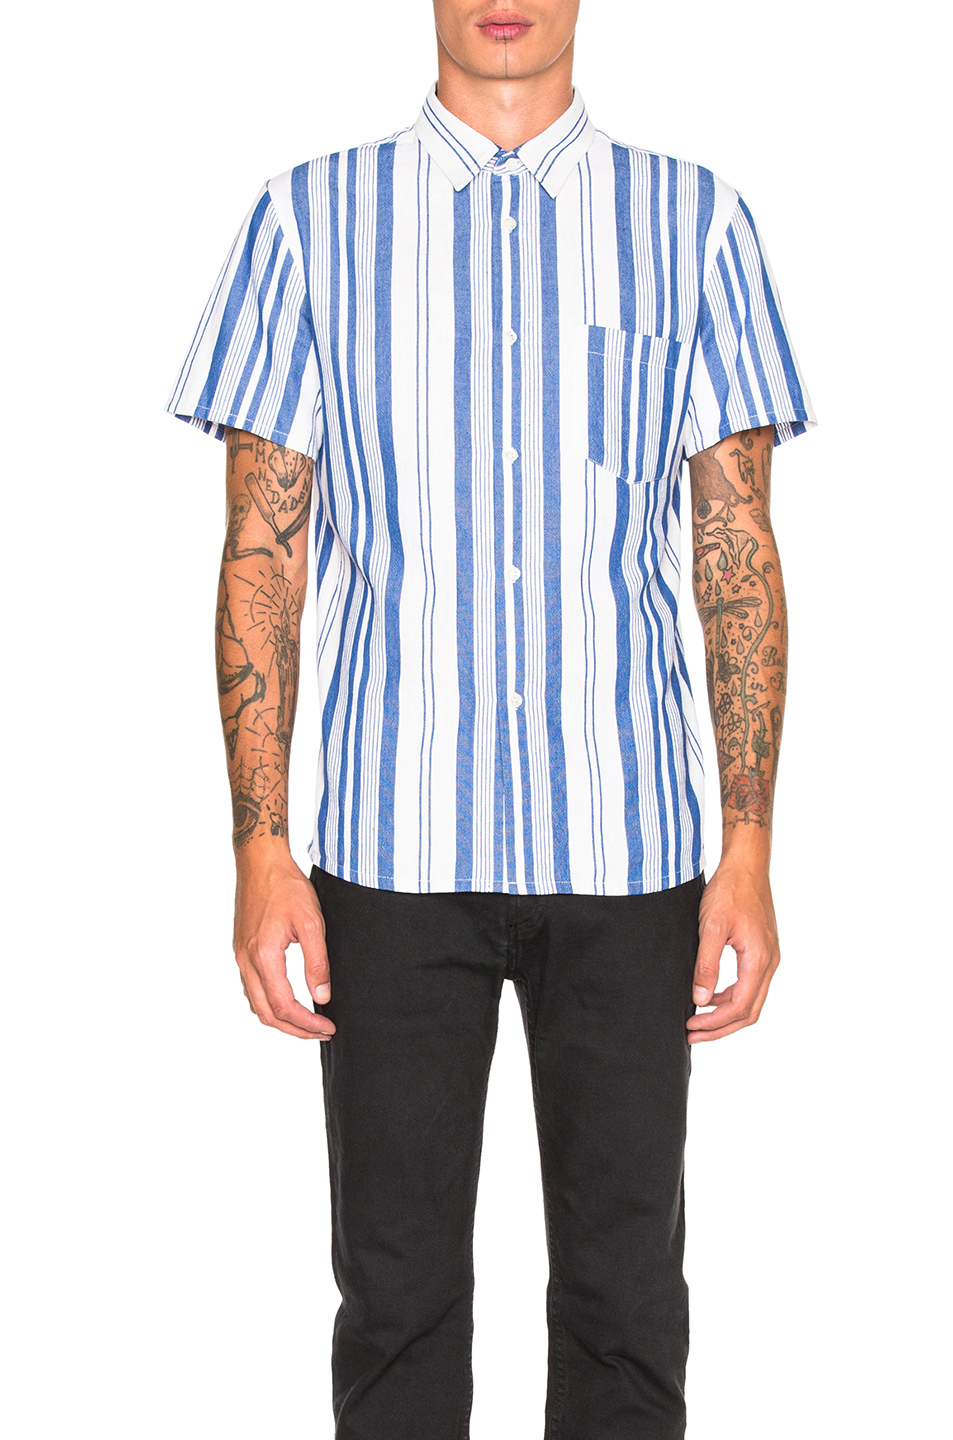 A.P.C. Bryan Shirt in White,Blue,Stripes